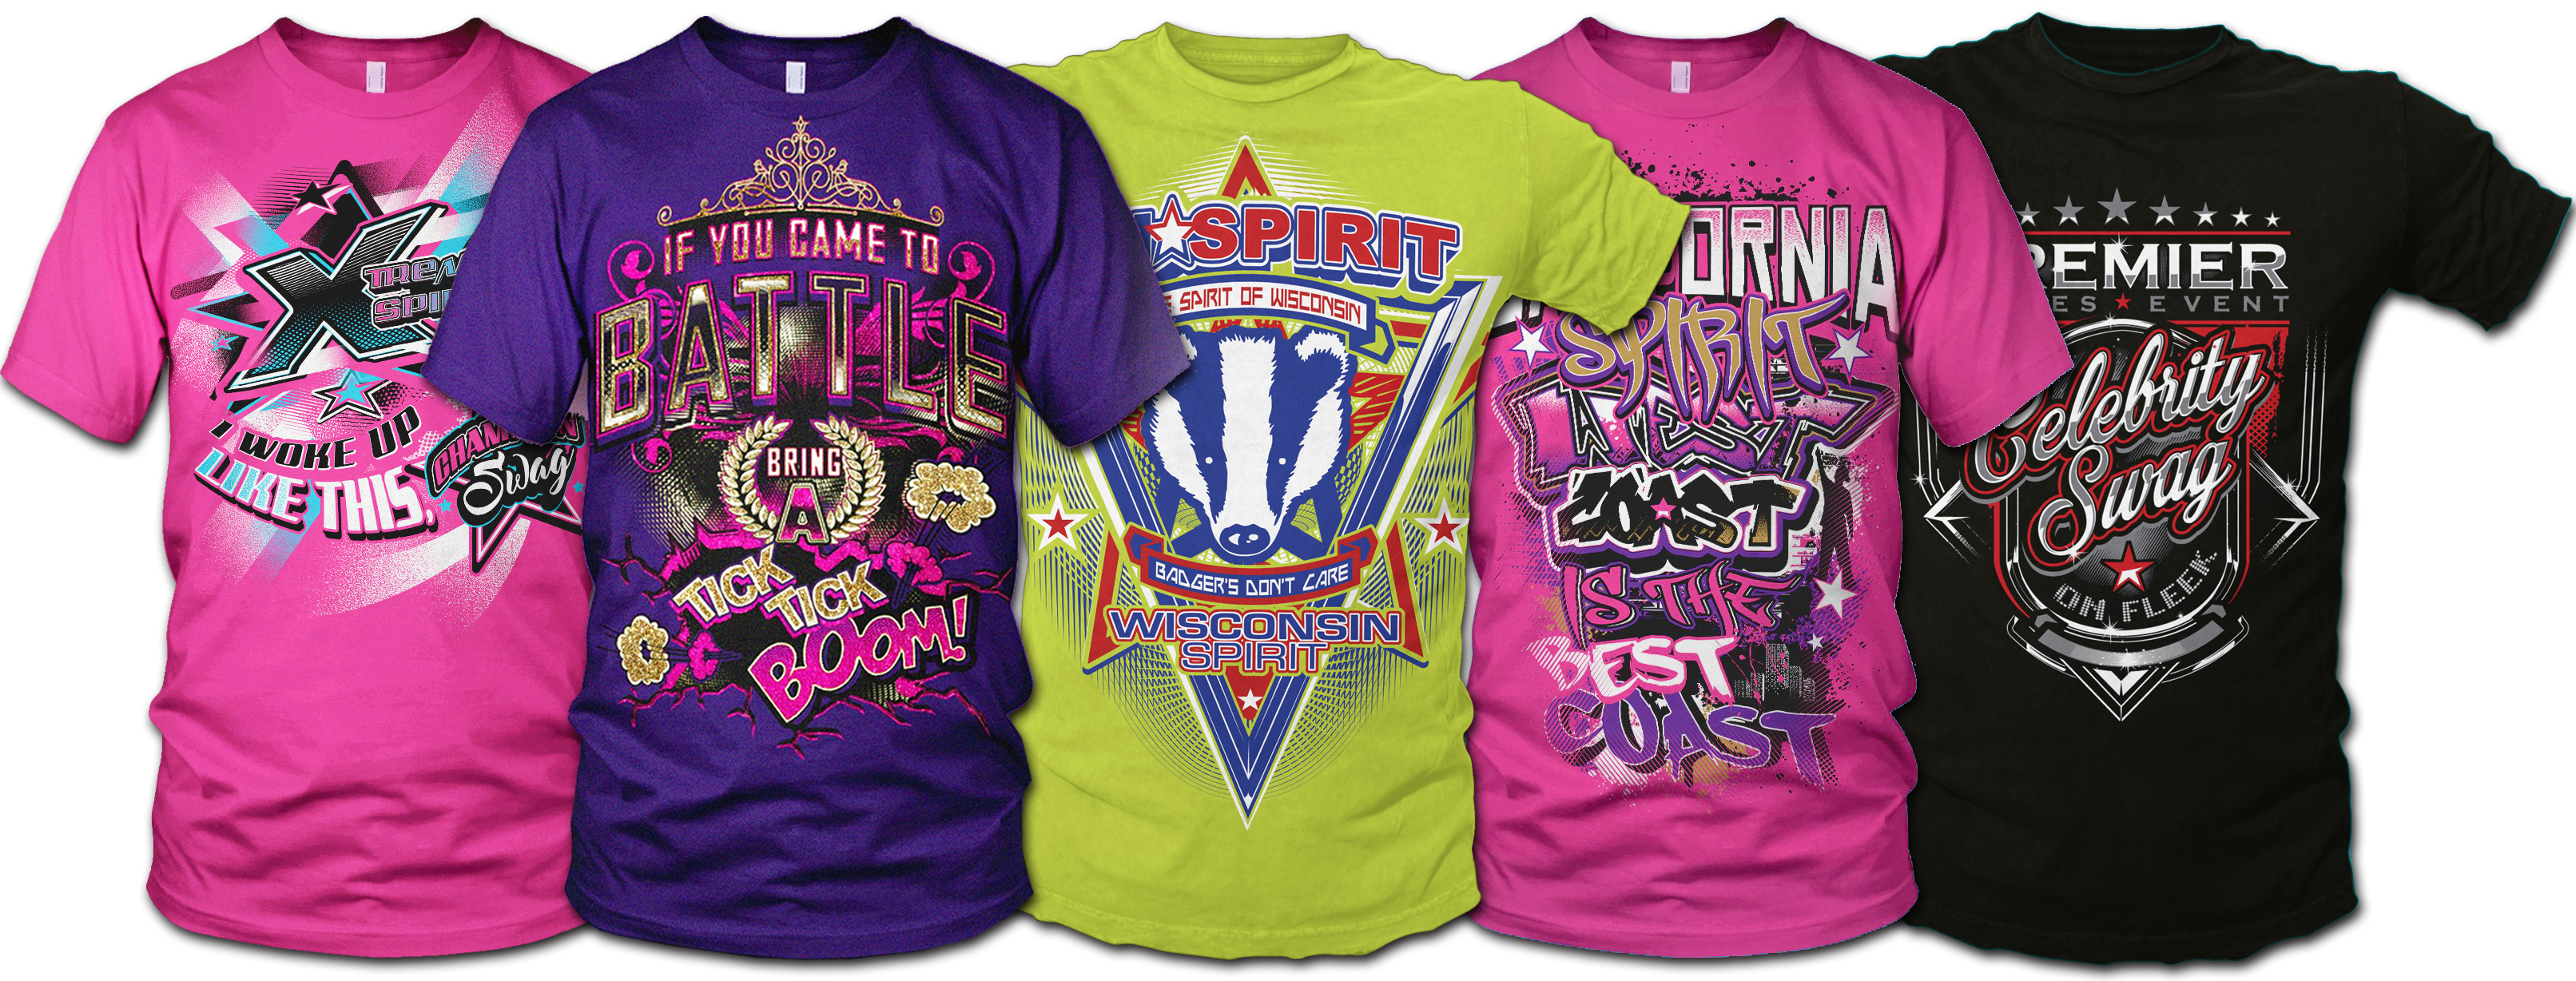 Allstar Couture T-Shirts Ad